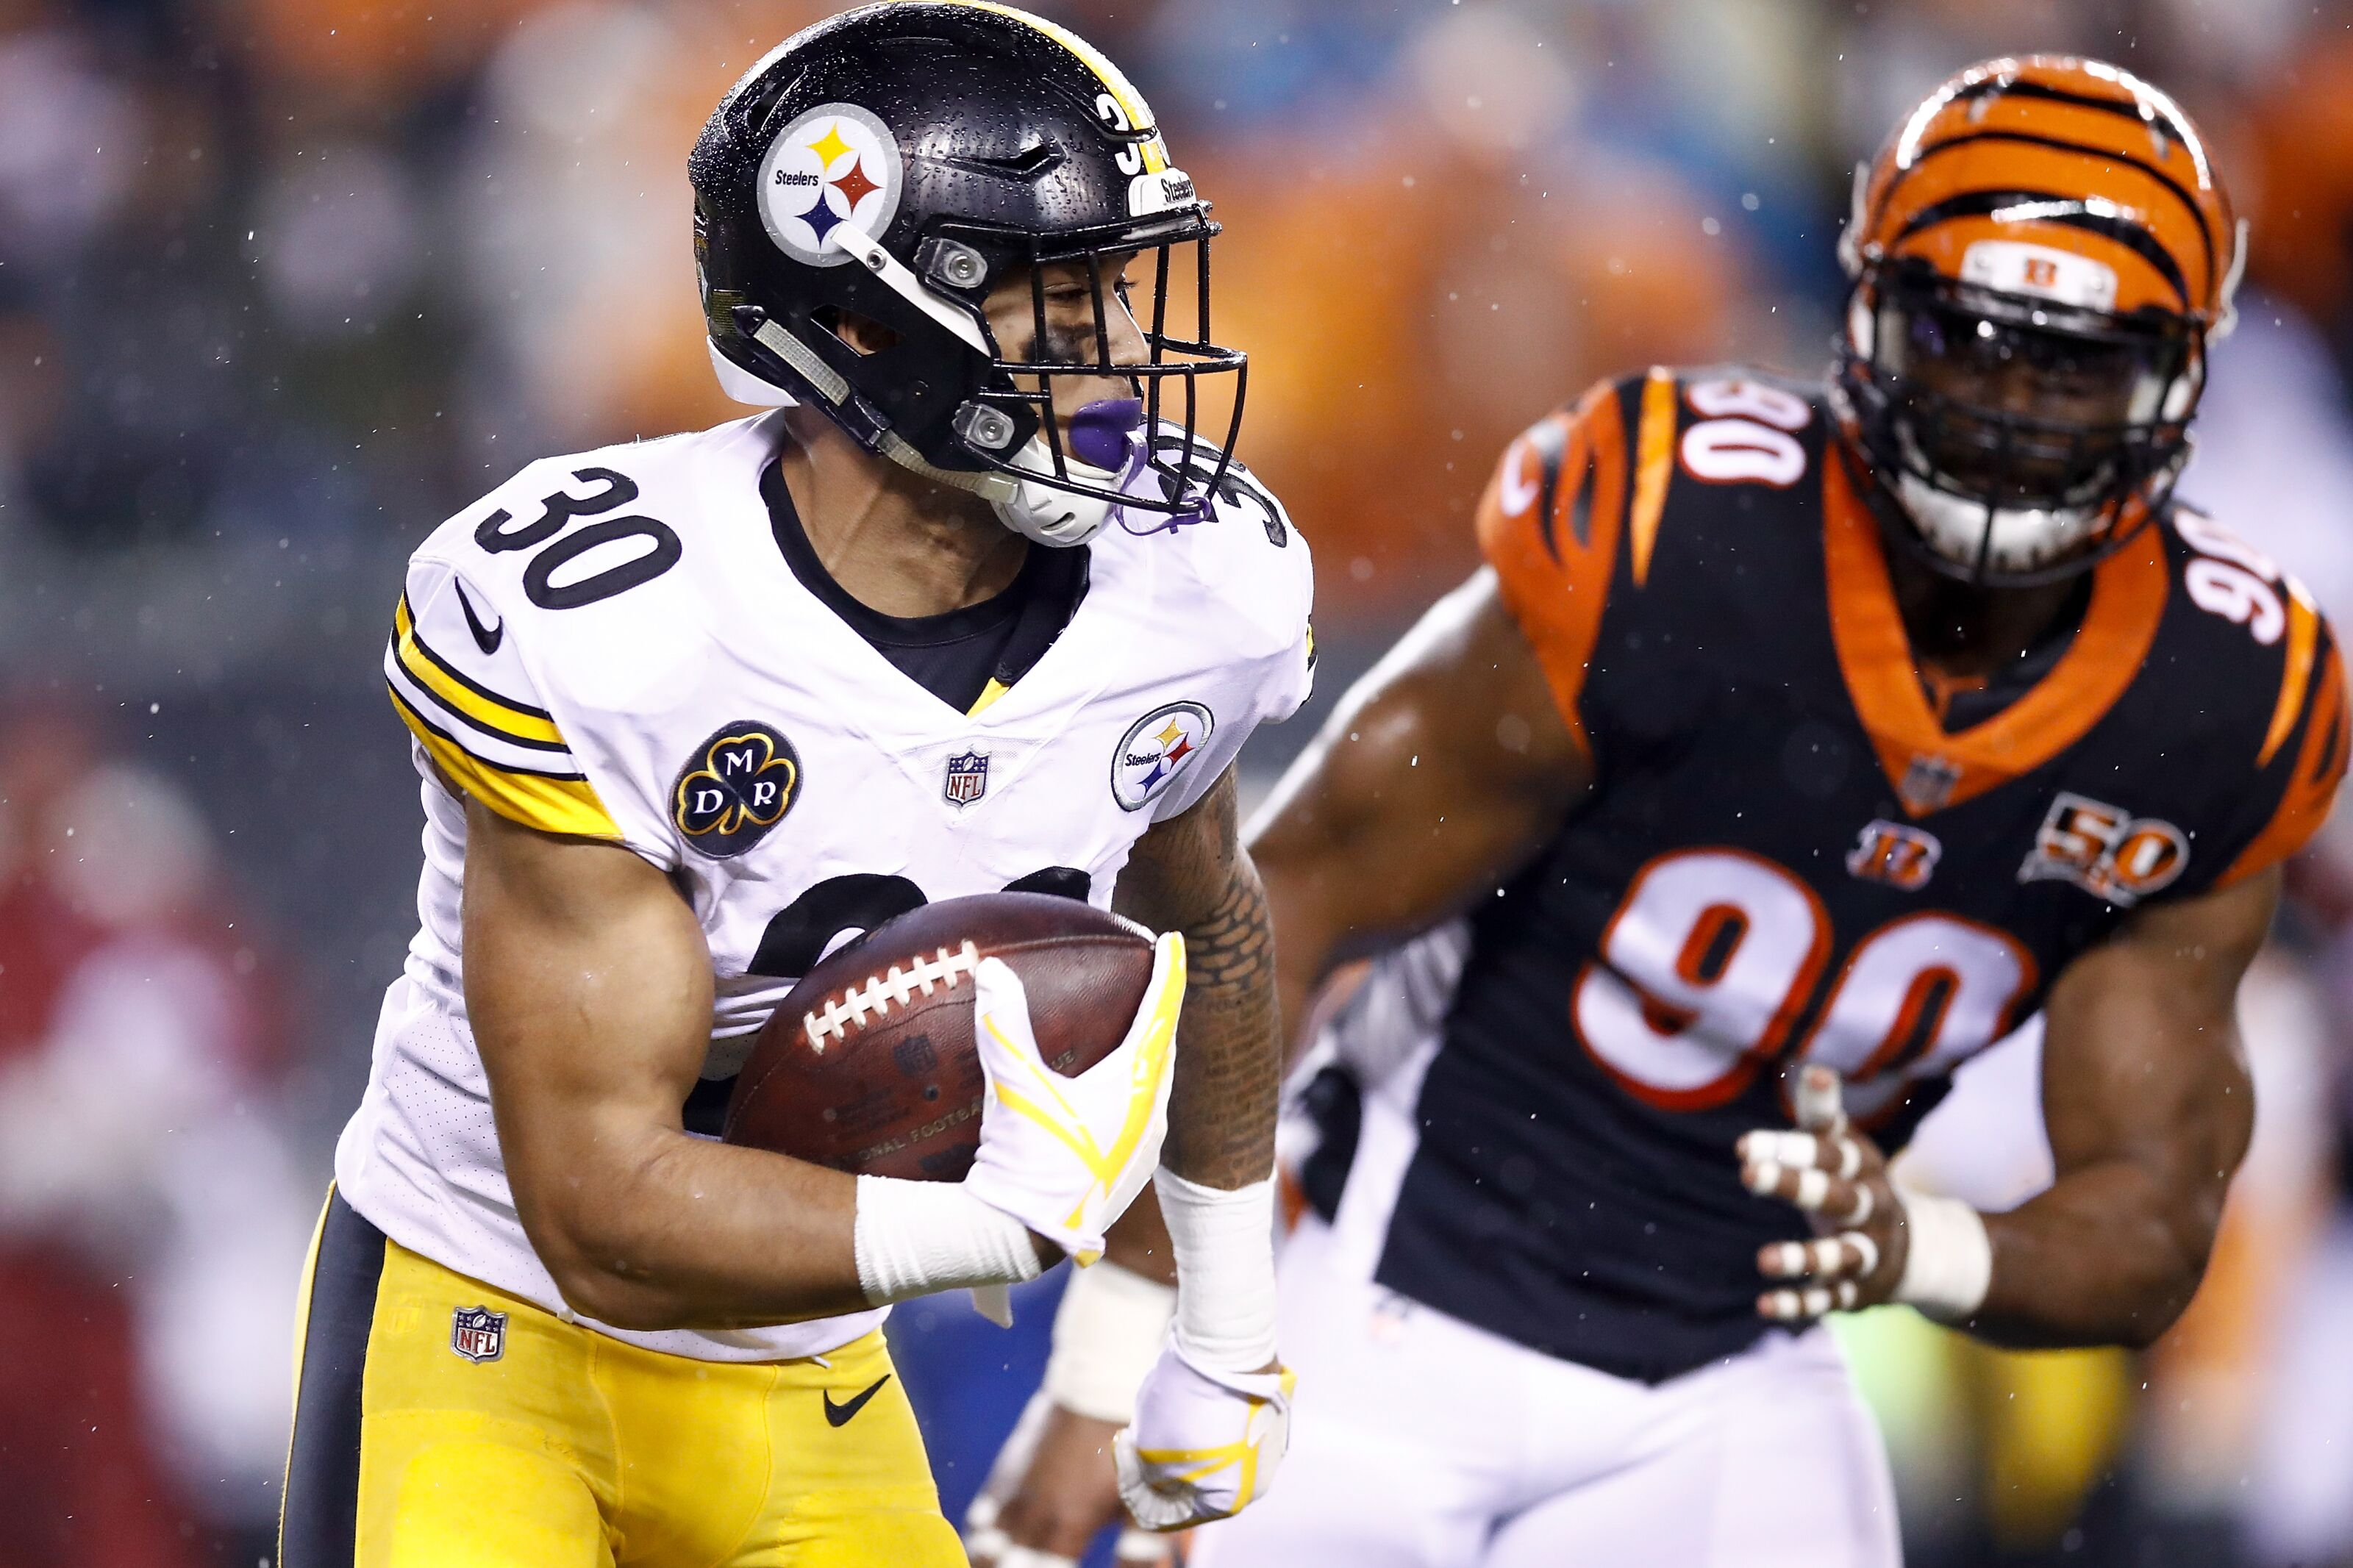 Ranking the top AFC North running backs in 2019